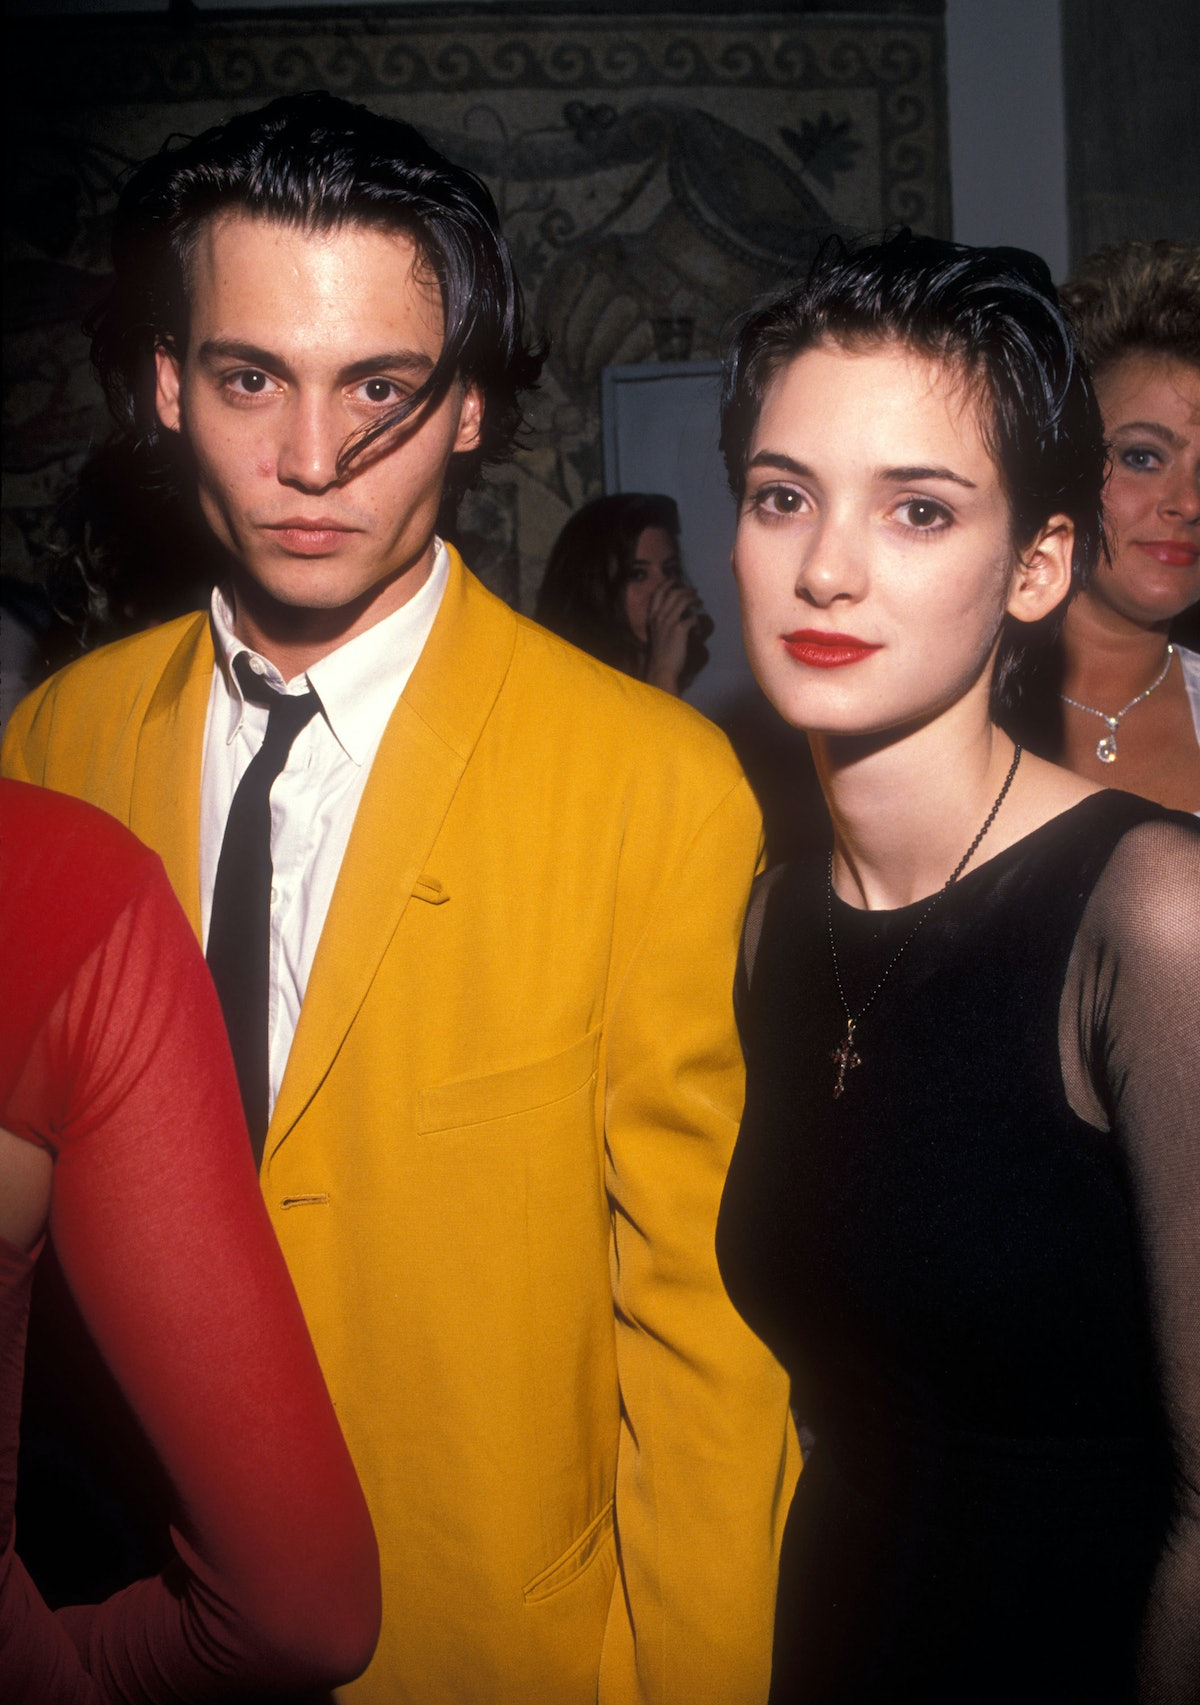 Johnny Depp and Winona Ryder had matching hairstyles in the early aughts. back in the day. Here are ...